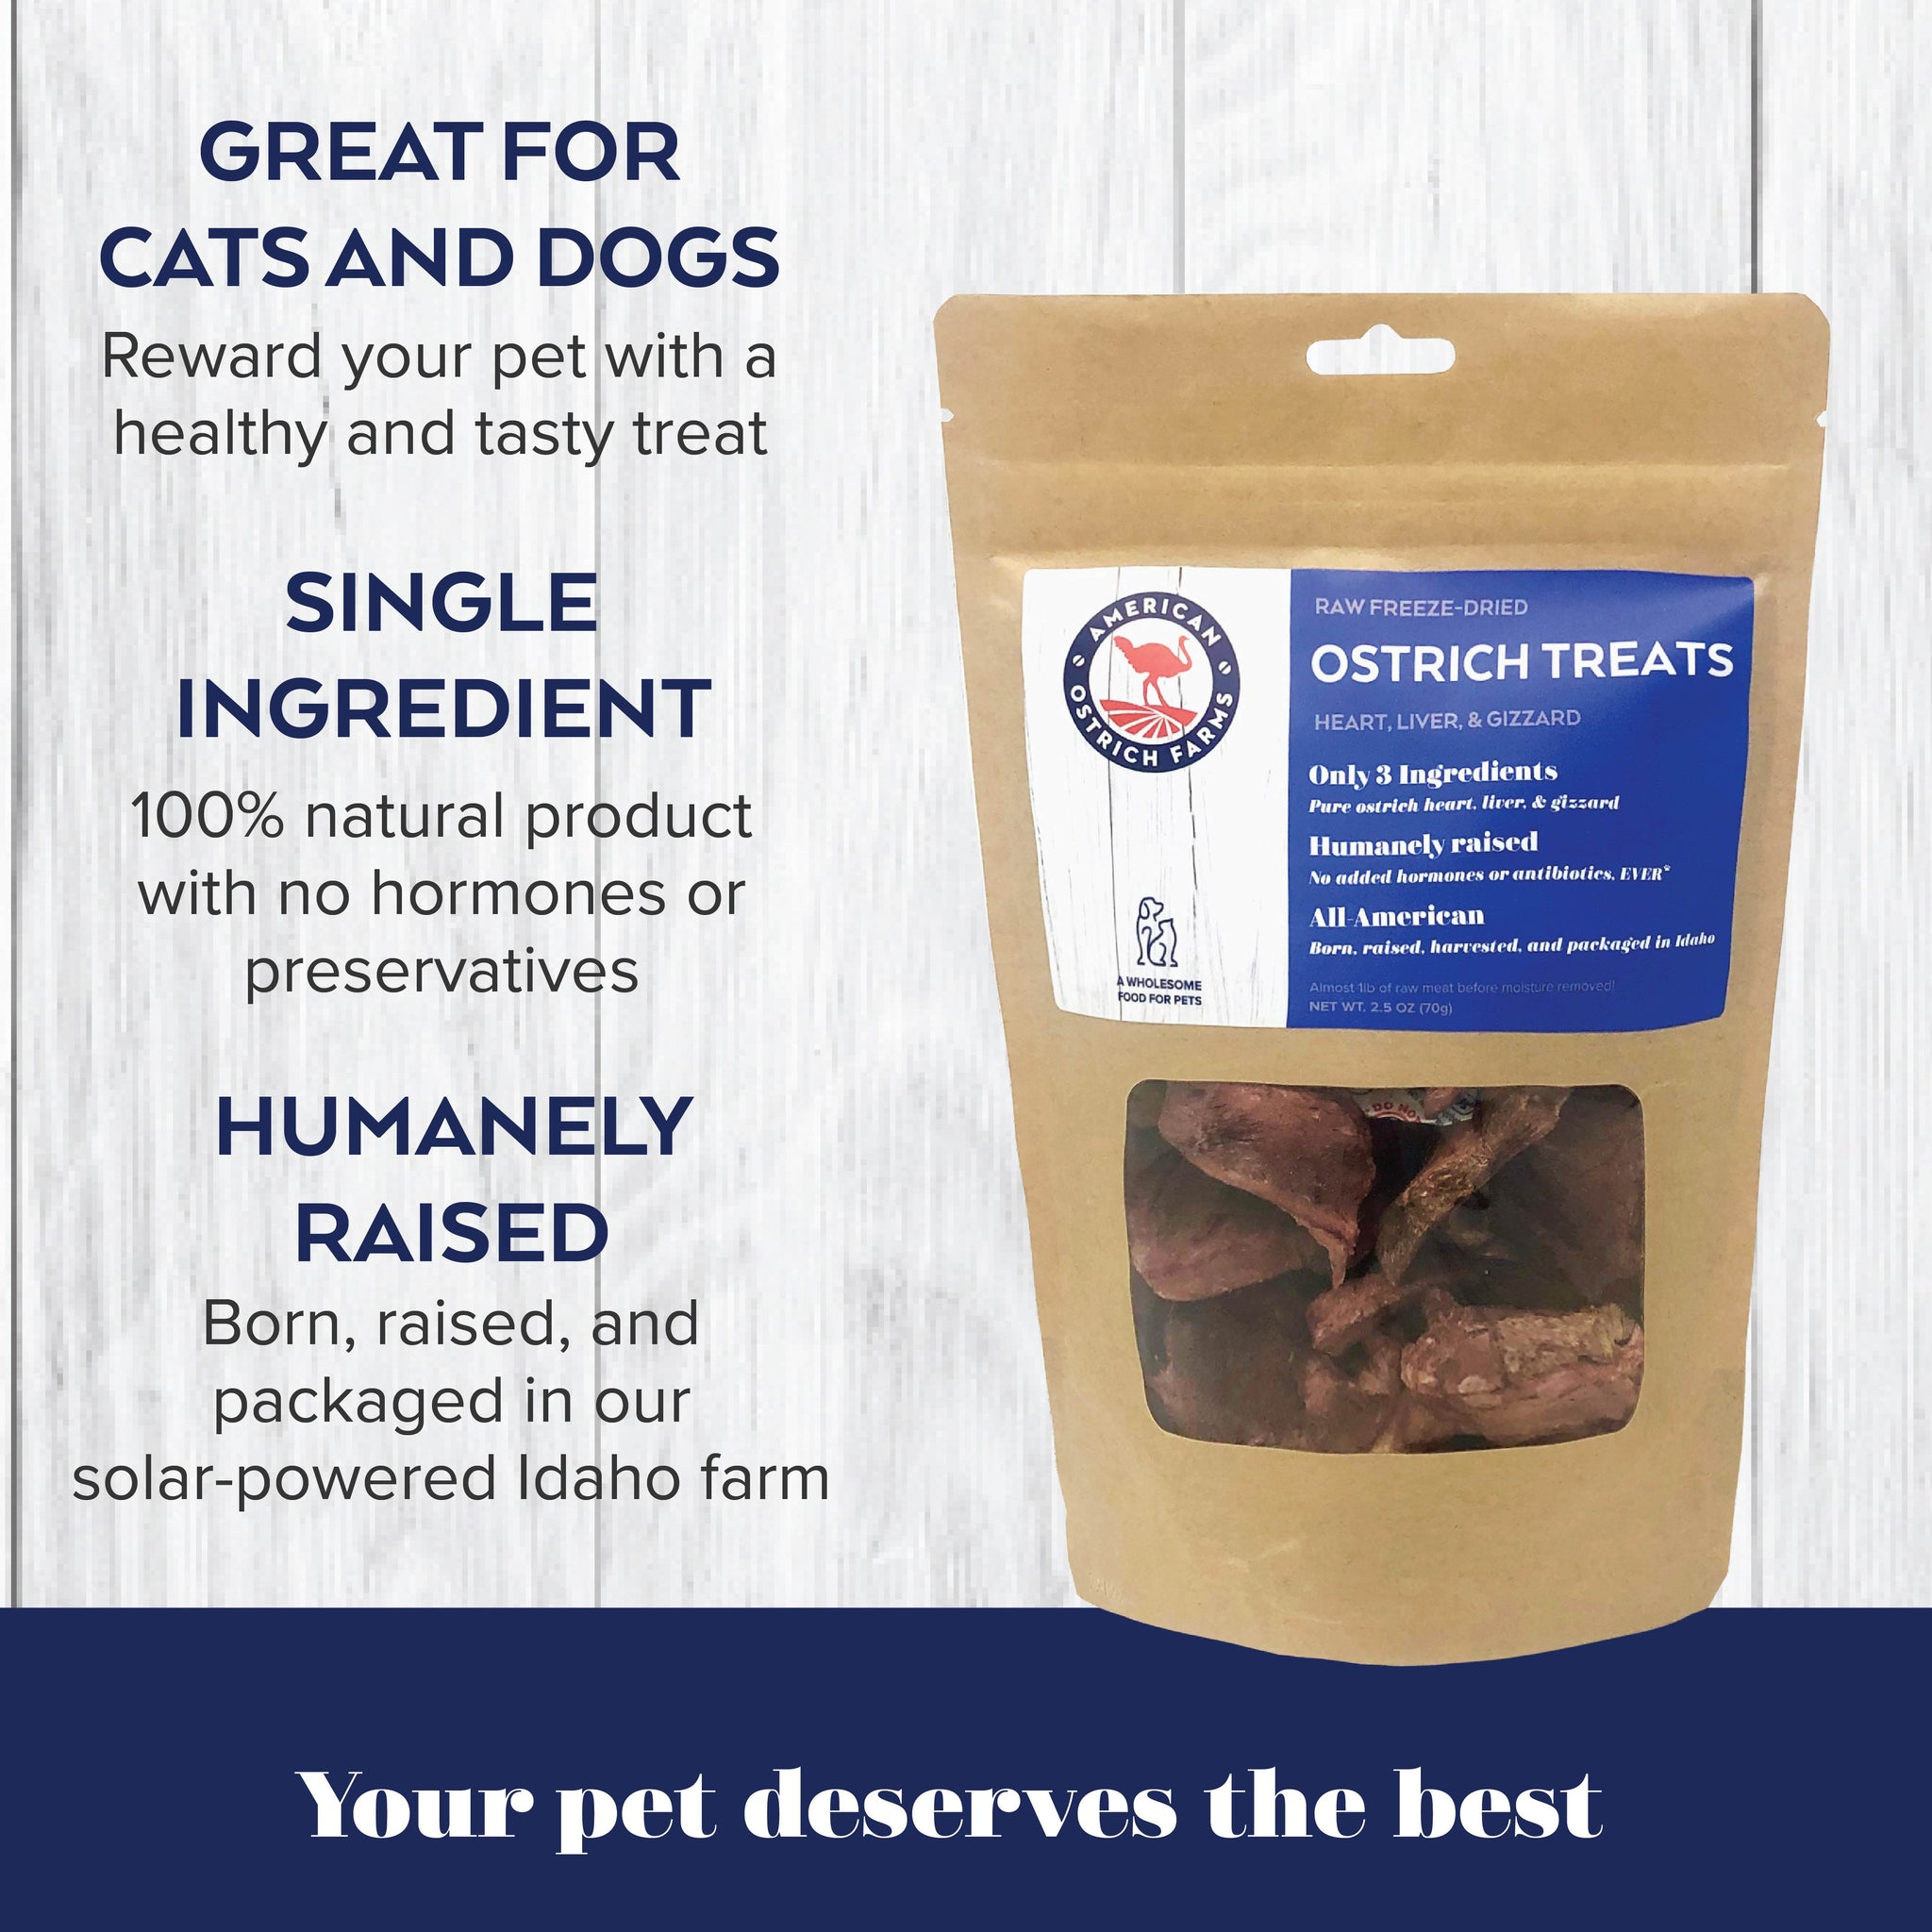 benefits of raw freeze dried ostrich treats